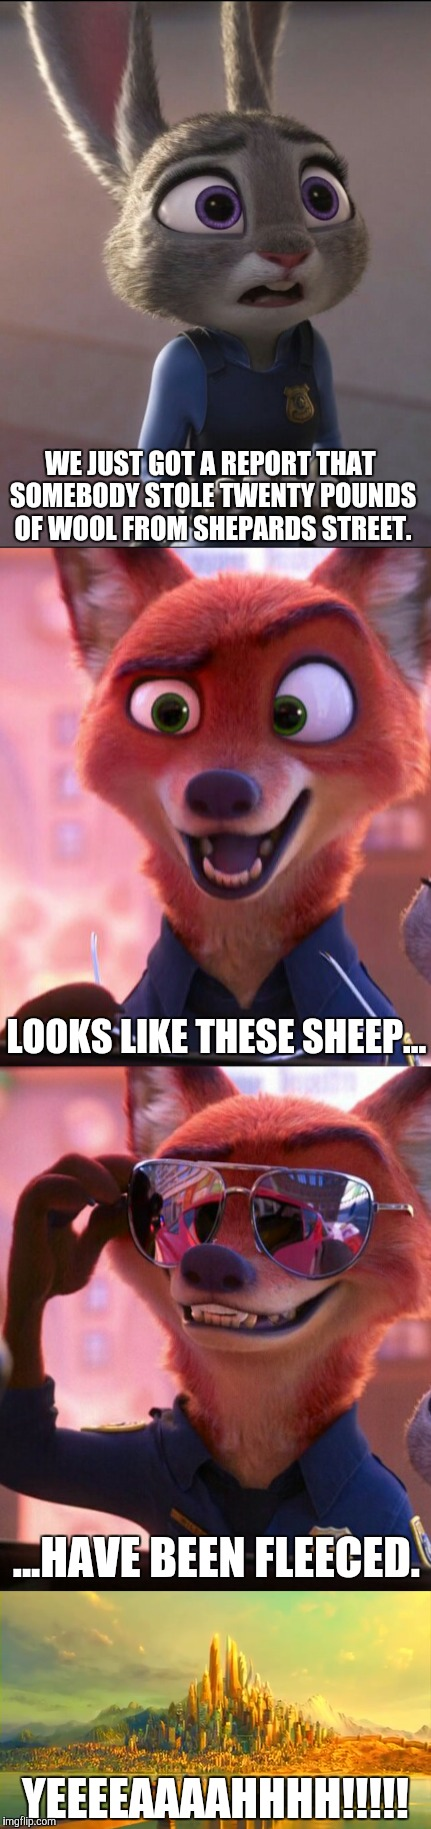 CSI: Zootopia 3 |  WE JUST GOT A REPORT THAT SOMEBODY STOLE TWENTY POUNDS OF WOOL FROM SHEPARDS STREET. LOOKS LIKE THESE SHEEP... ...HAVE BEEN FLEECED. YEEEEAAAAHHHH!!!!! | image tagged in zootopia,judy hopps,nick wilde,parody,funny,memes | made w/ Imgflip meme maker